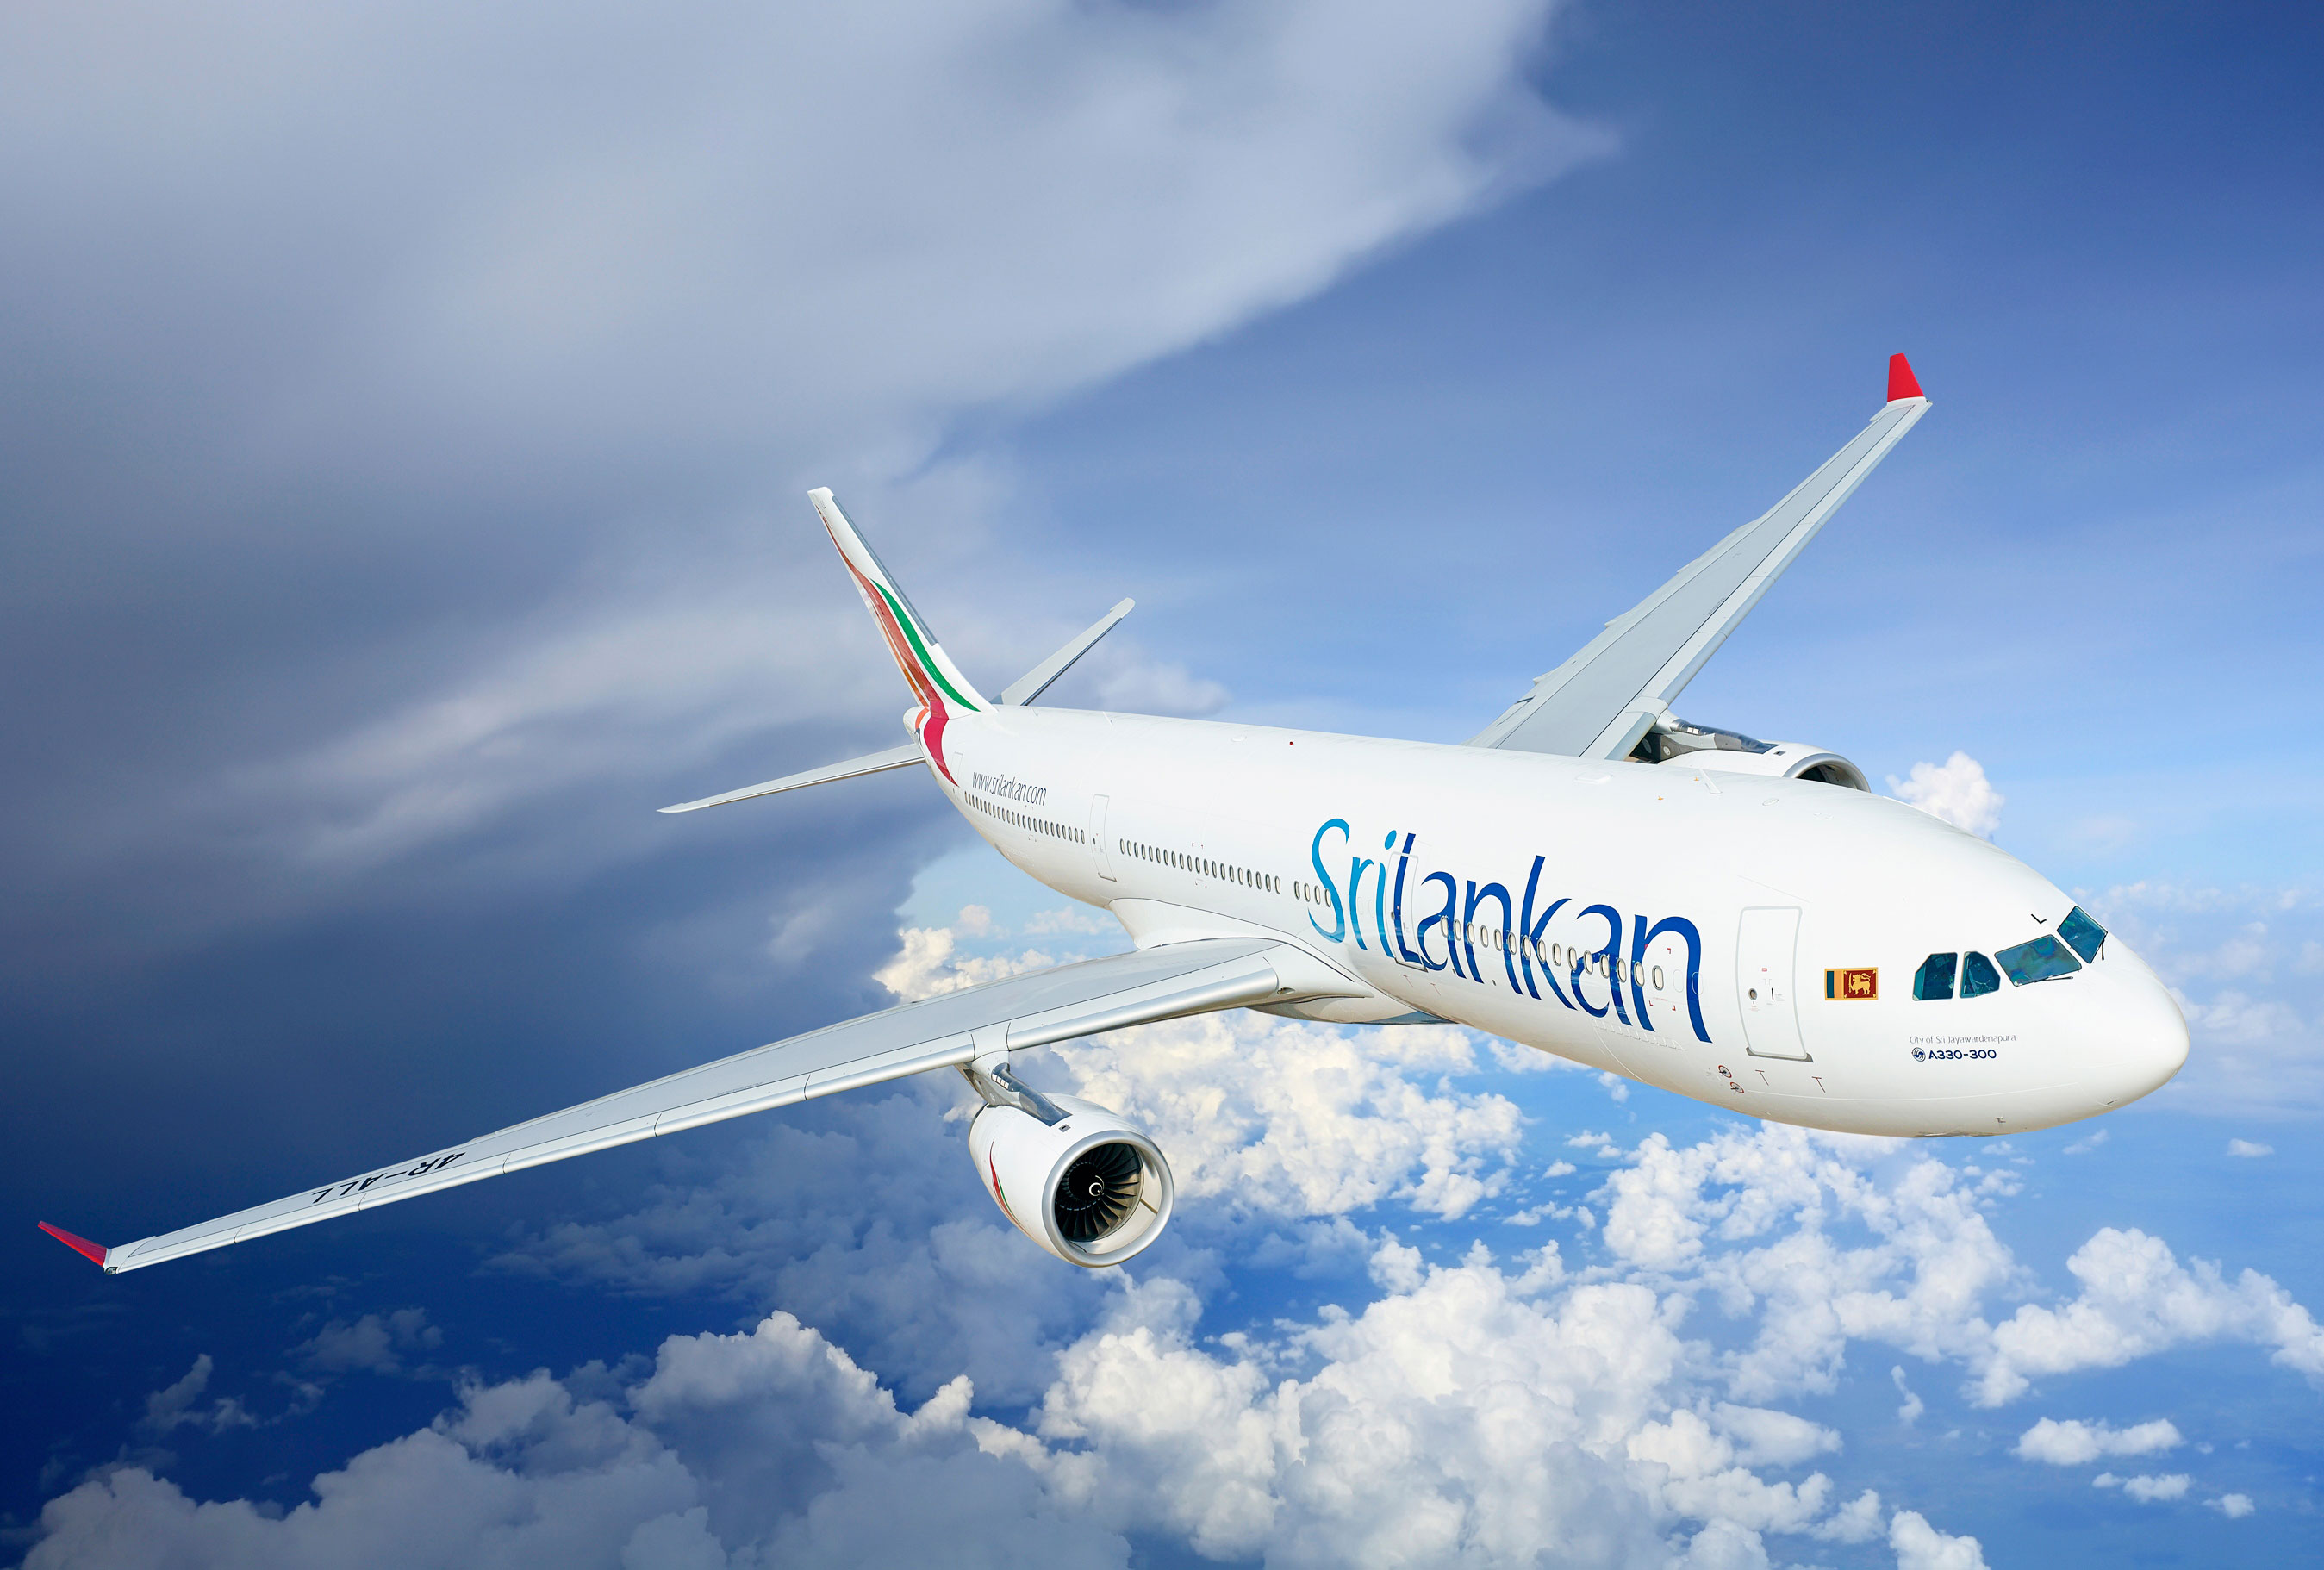 srilankan airlines paris colombo en a330 300 flambant neuf air journal. Black Bedroom Furniture Sets. Home Design Ideas